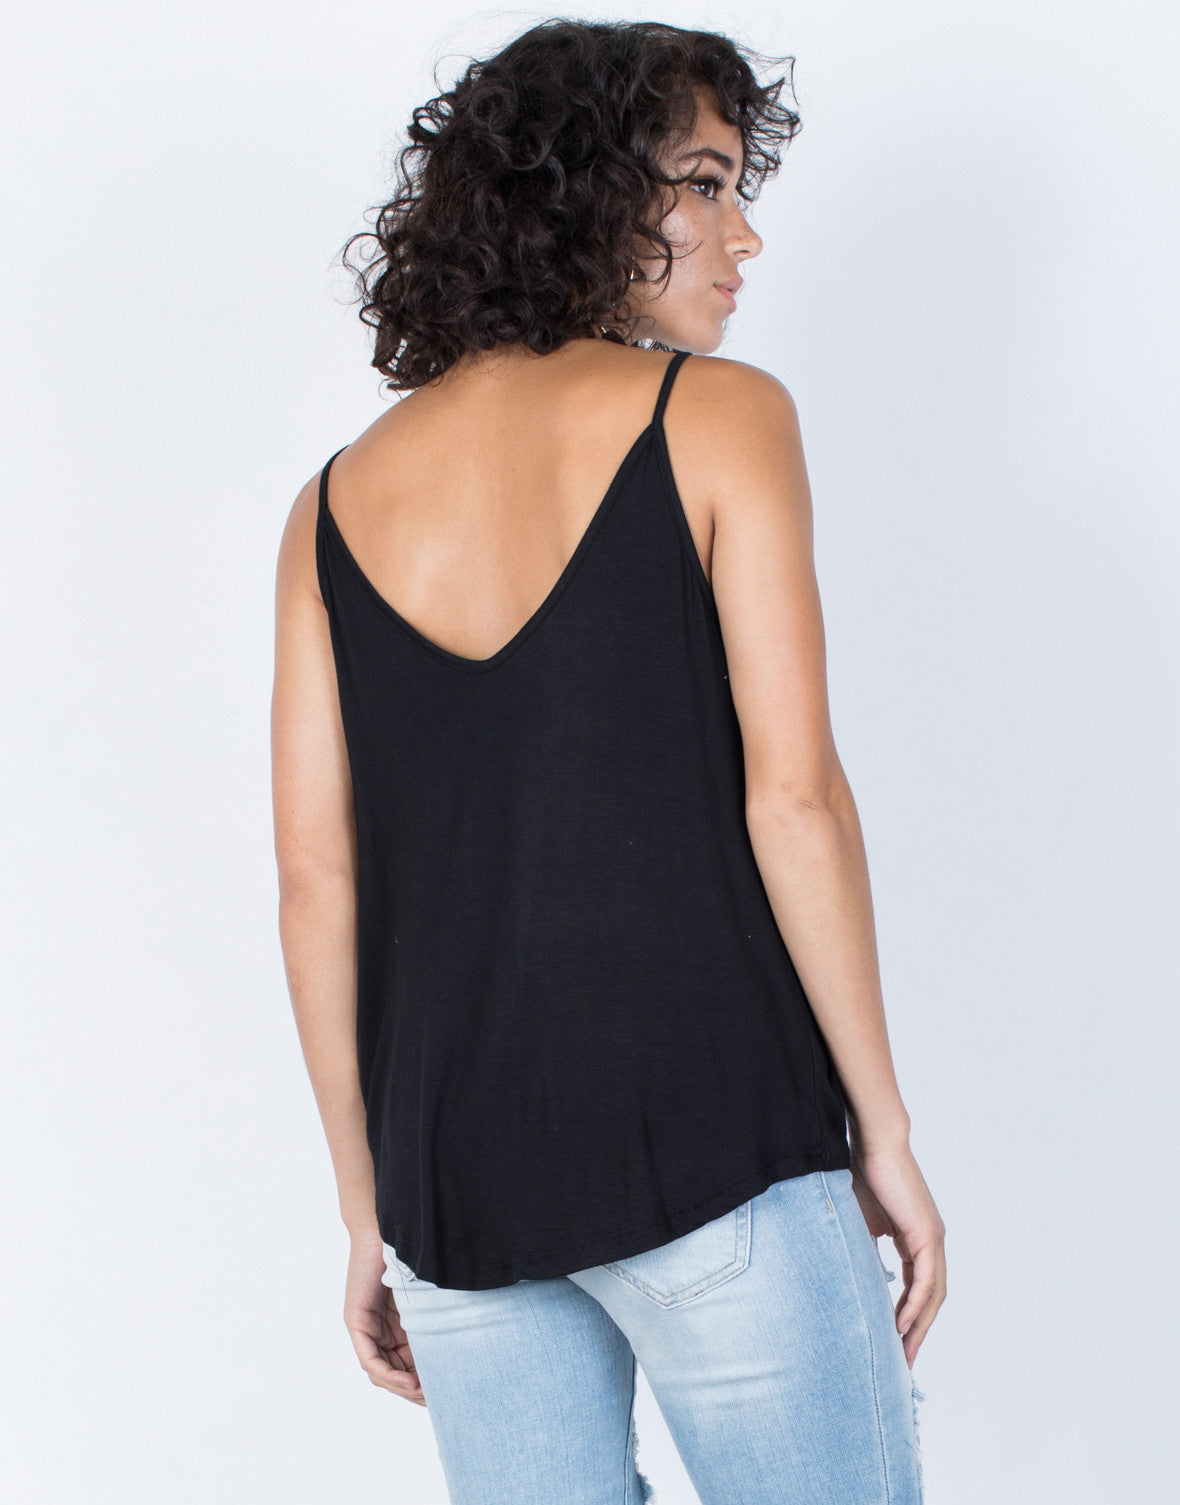 Black Twist and Turn Cami - Back View